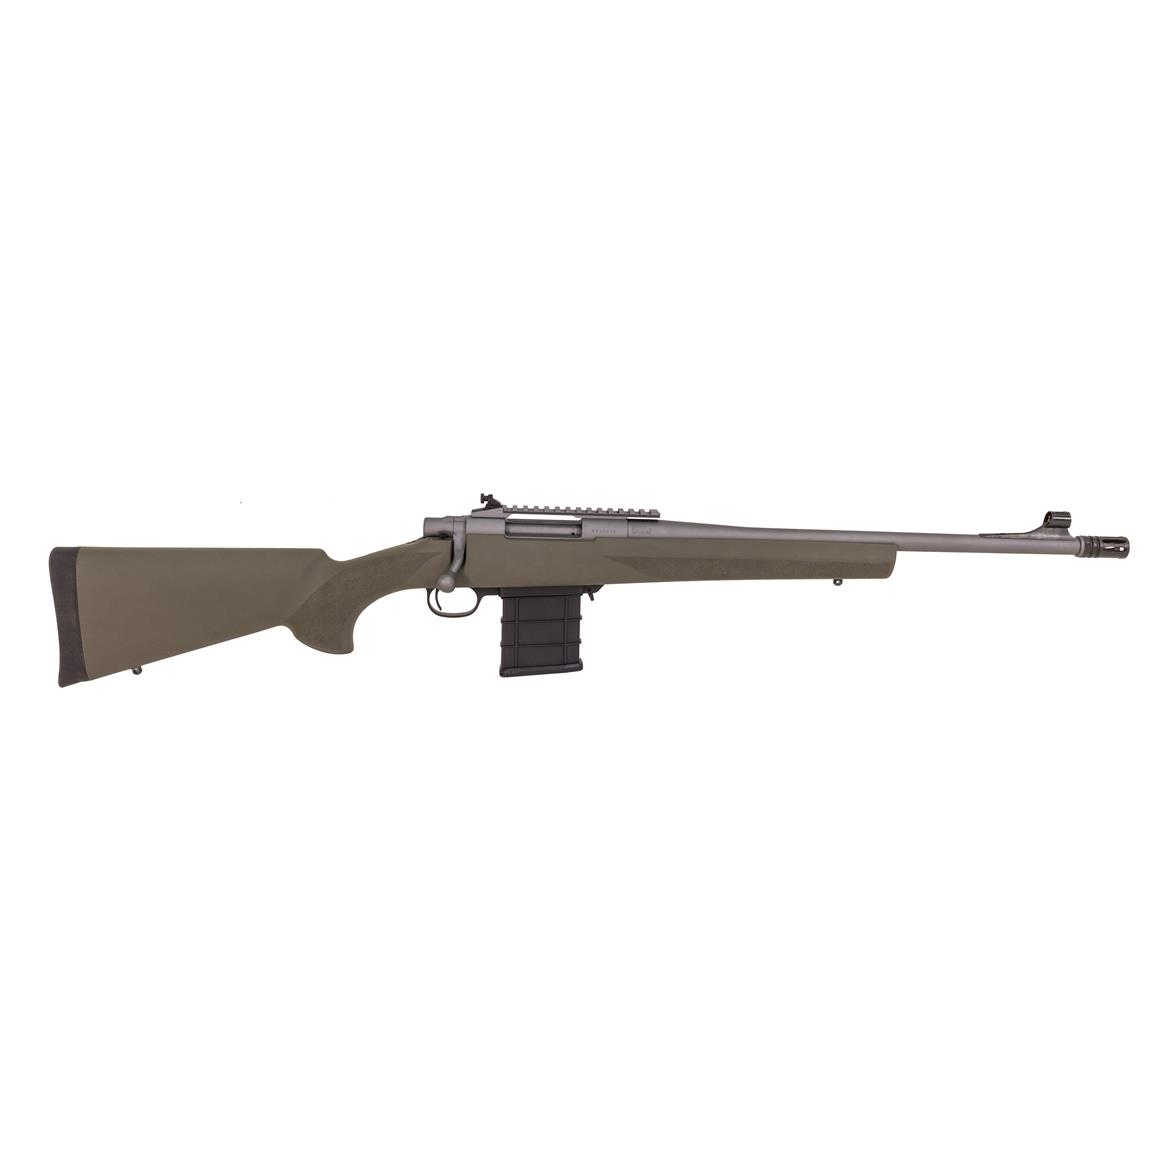 "LSI Howa Scout, Bolt Action, .308 Winchester, Centerfire, 18.5"" Barrel, 5 Rounds"